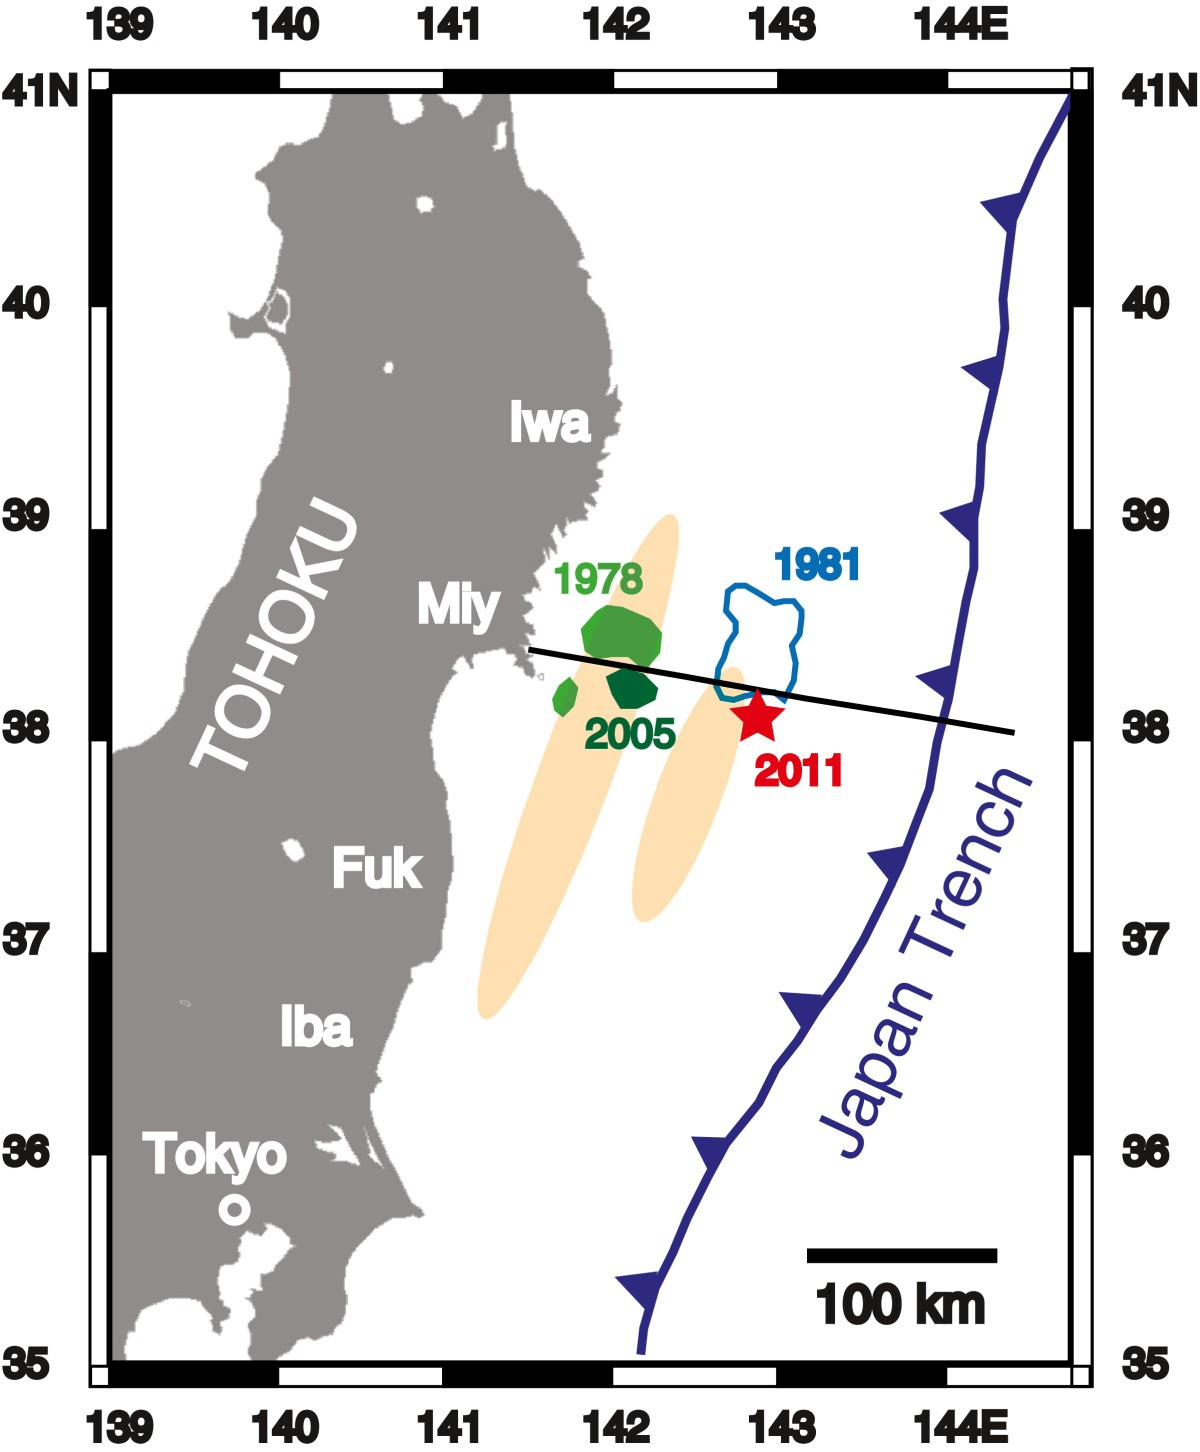 Rheological Profile Across The Ne Japan Interplate Megathrust In Problem 407 Shear And Moment Diagrams Strength Of Materials Review Figure 1